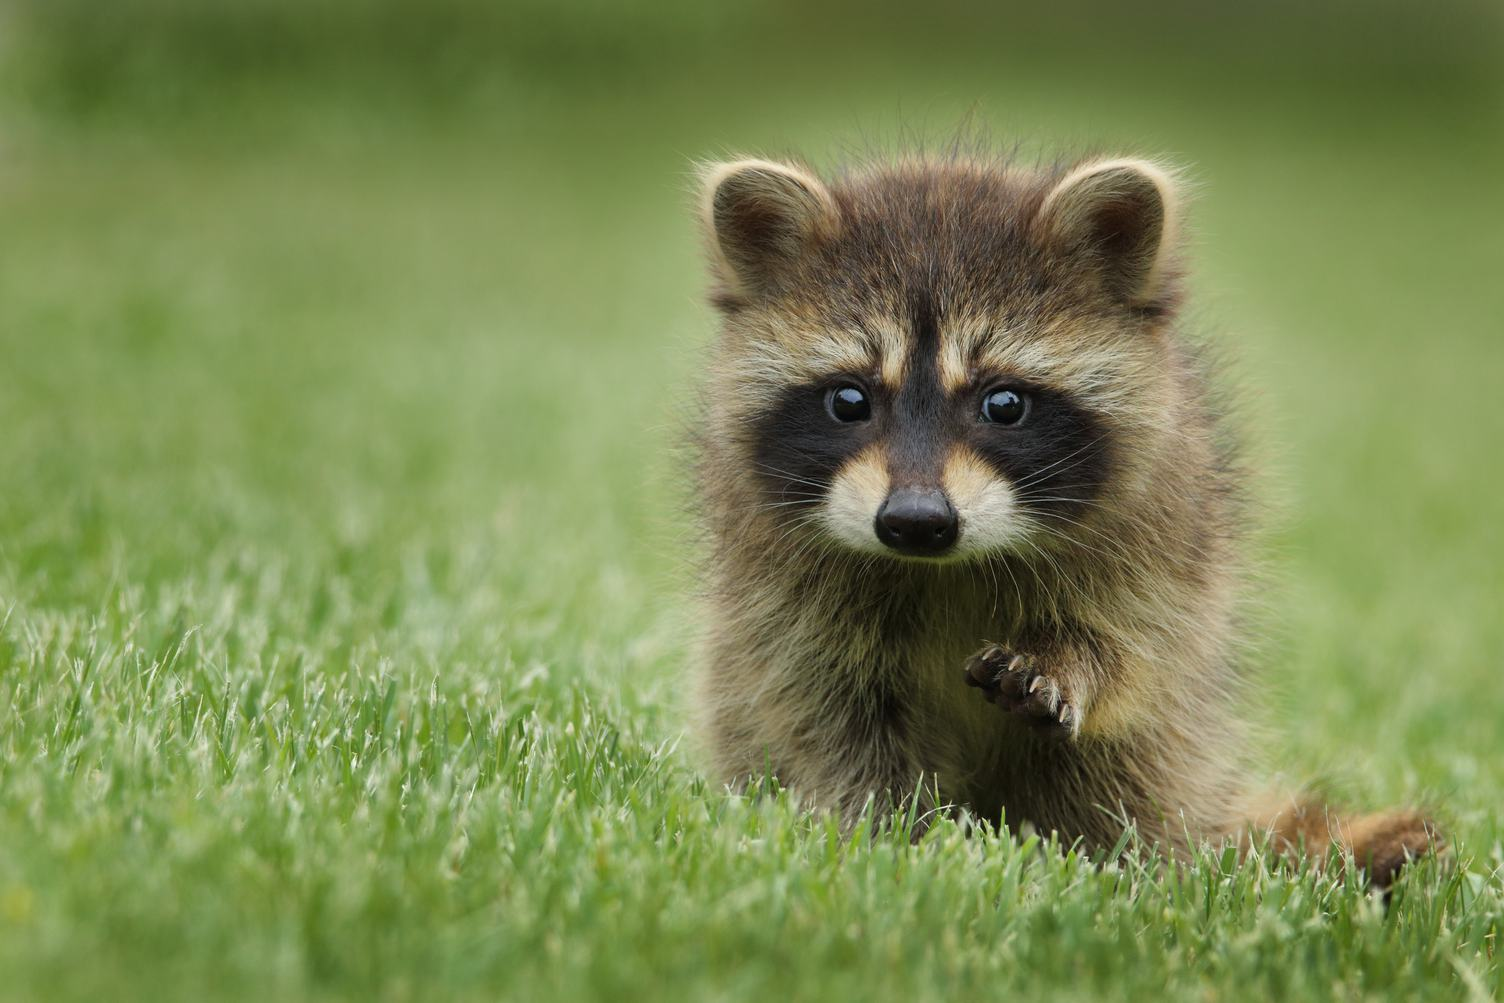 Cute Baby Raccoon on the Grass